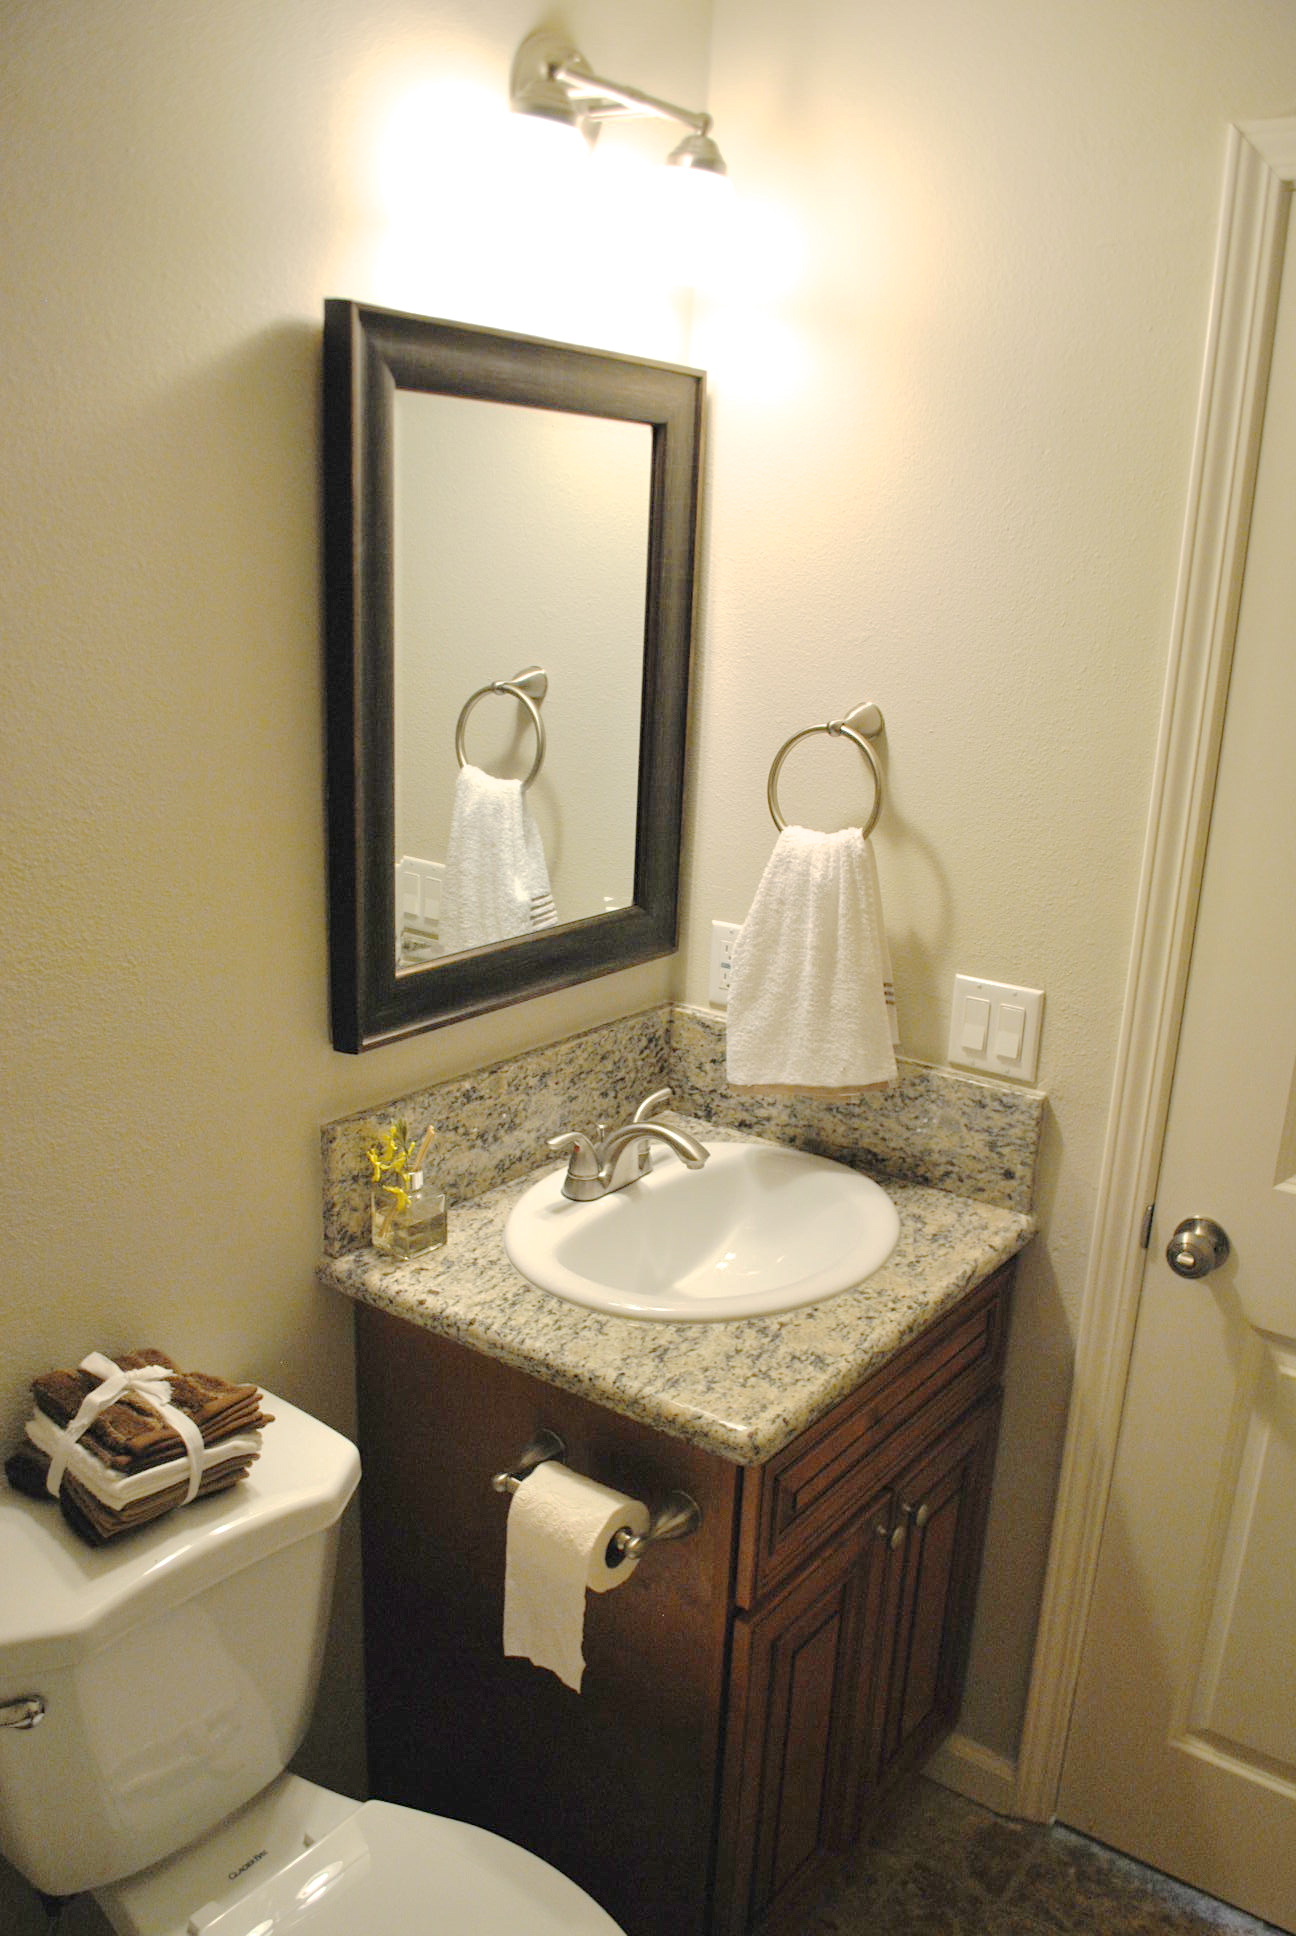 St Bathrooms 28 Images Avery Home Remodeling 427 W